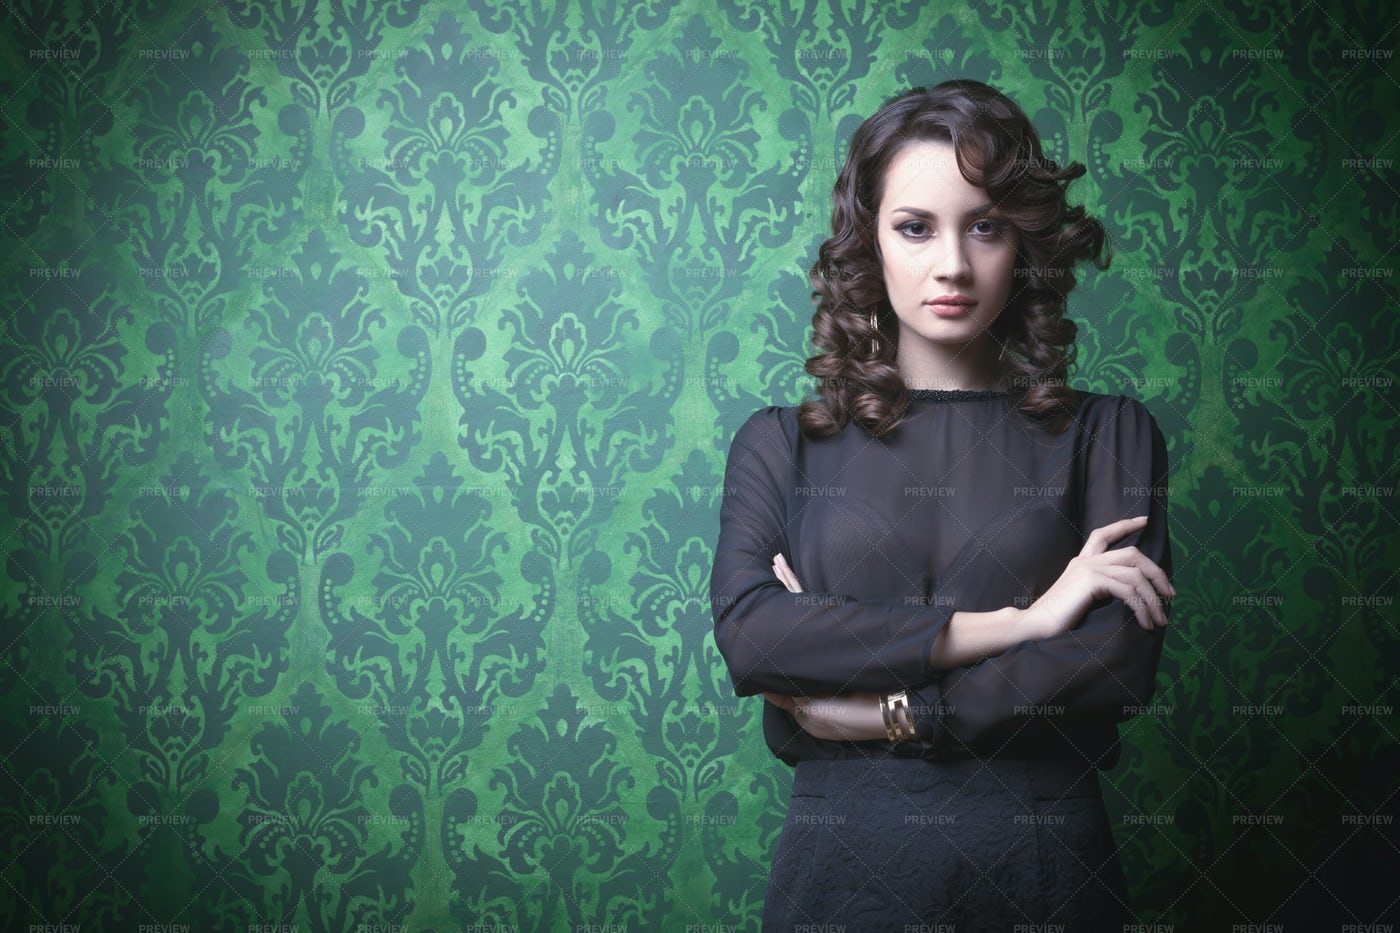 Beautiful Woman In Green Vintage Room: Stock Photos